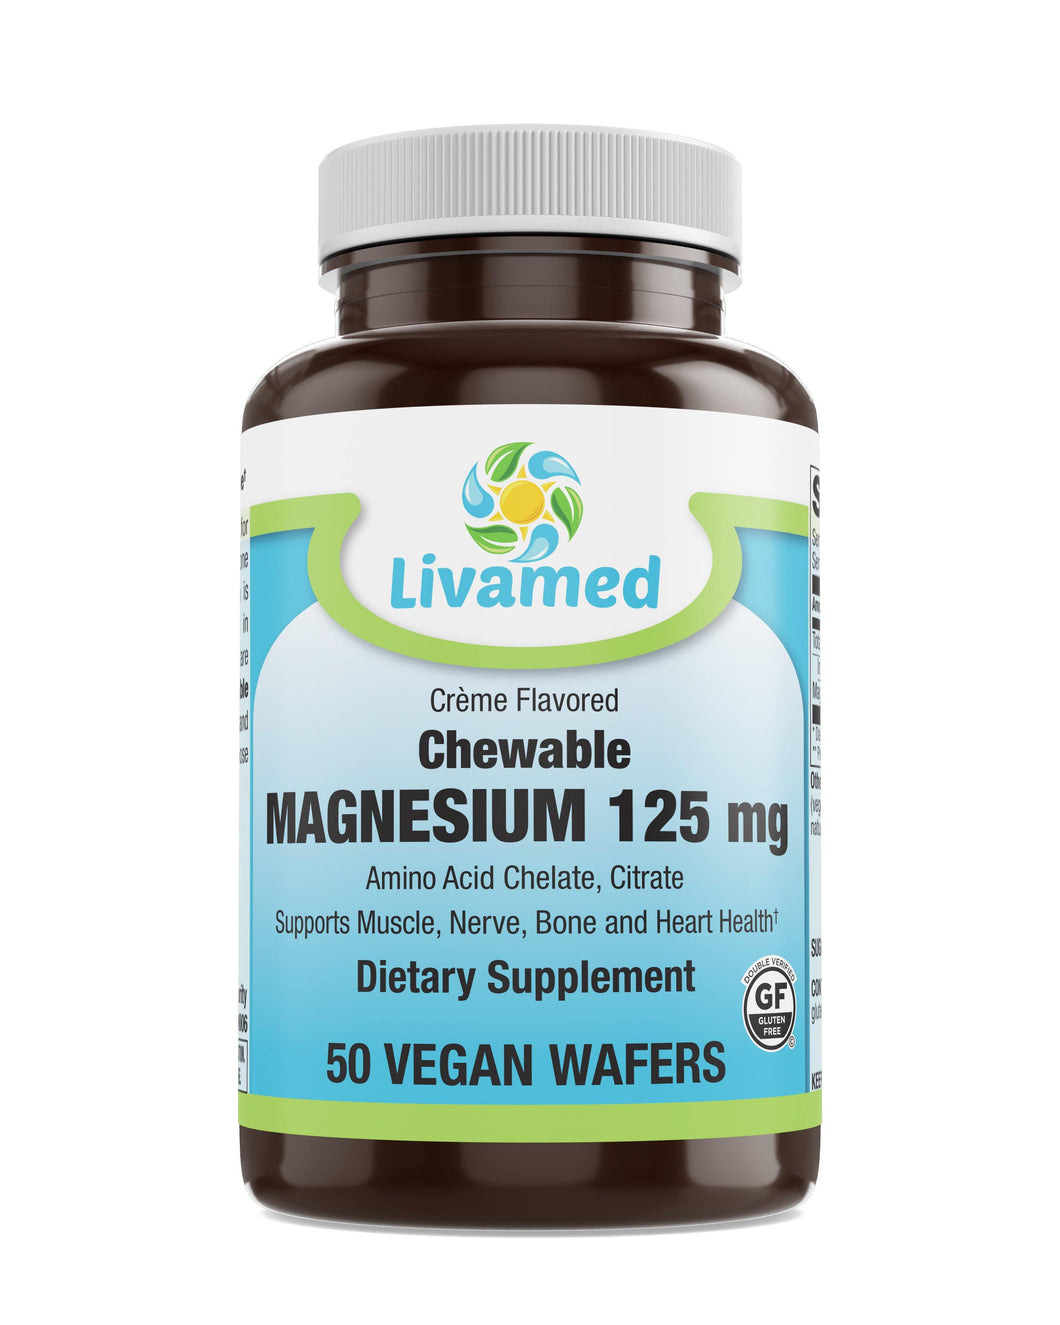 Livamed - Chewable Magnesium 125 mg Veg Wafer 50 Count - Livamed Vitamins